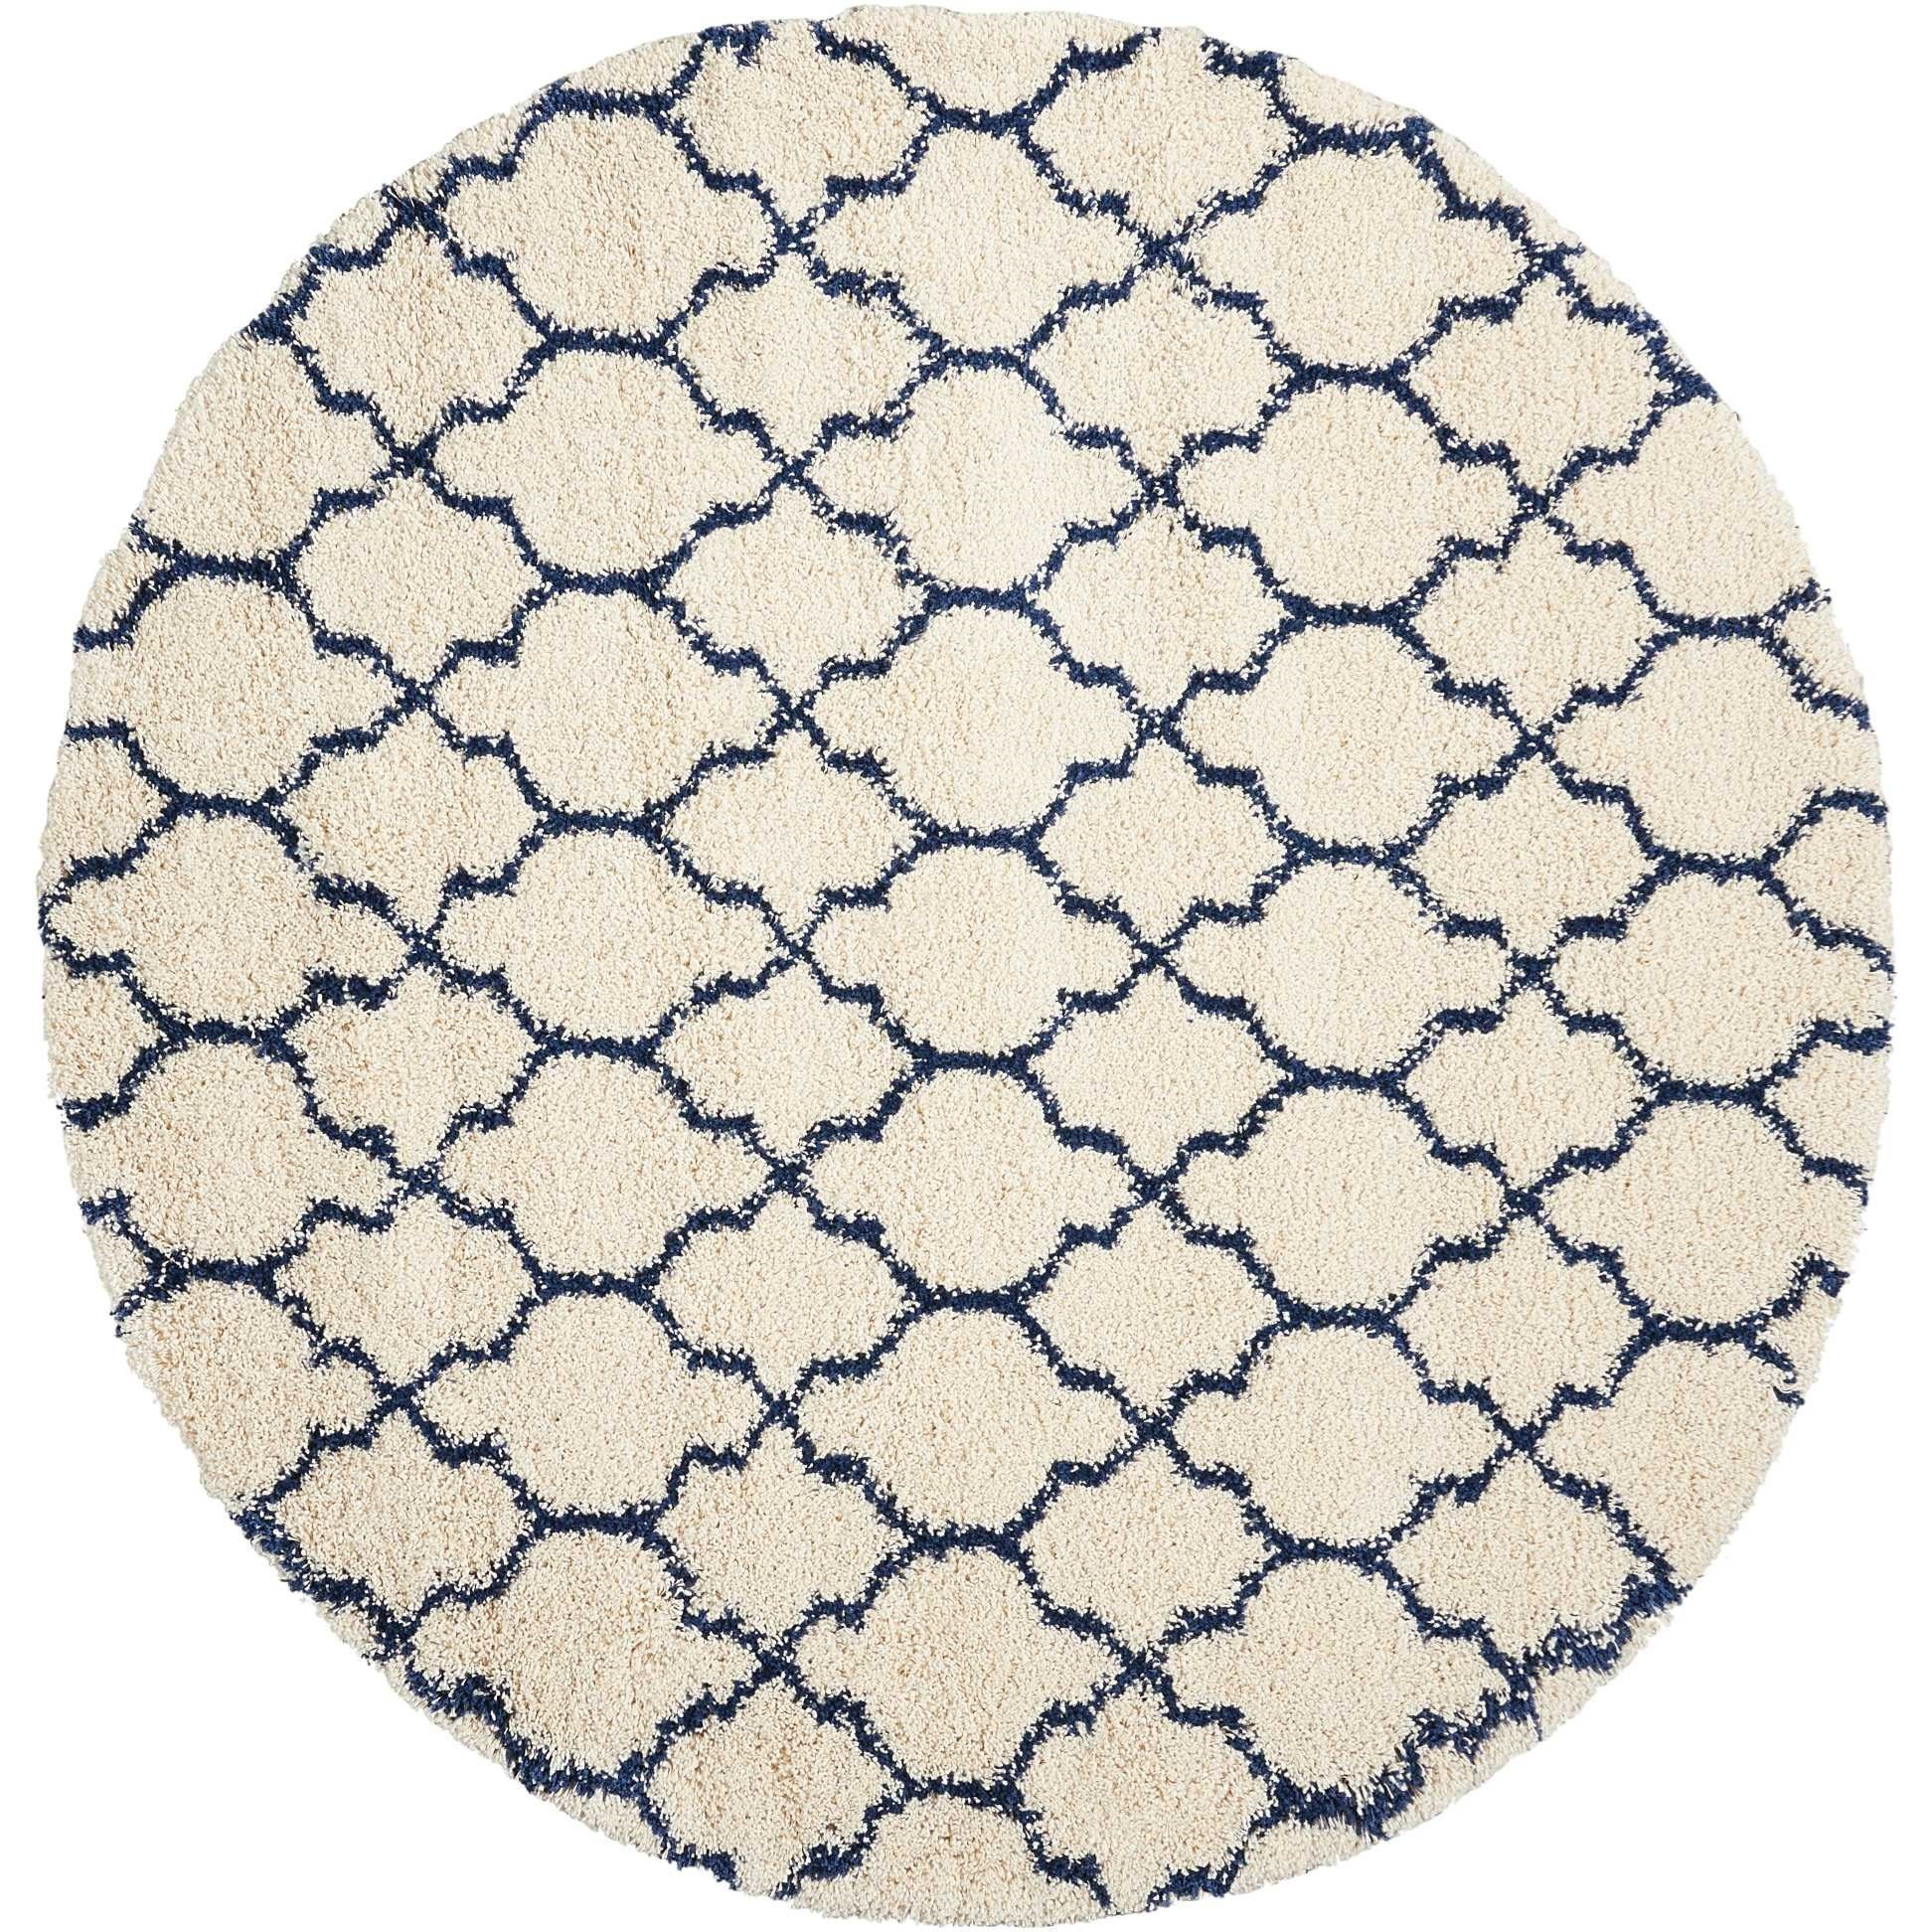 Amore Amore AMOR2 Blue and Ivory 7' Round   Rug by Nourison at Home Collections Furniture